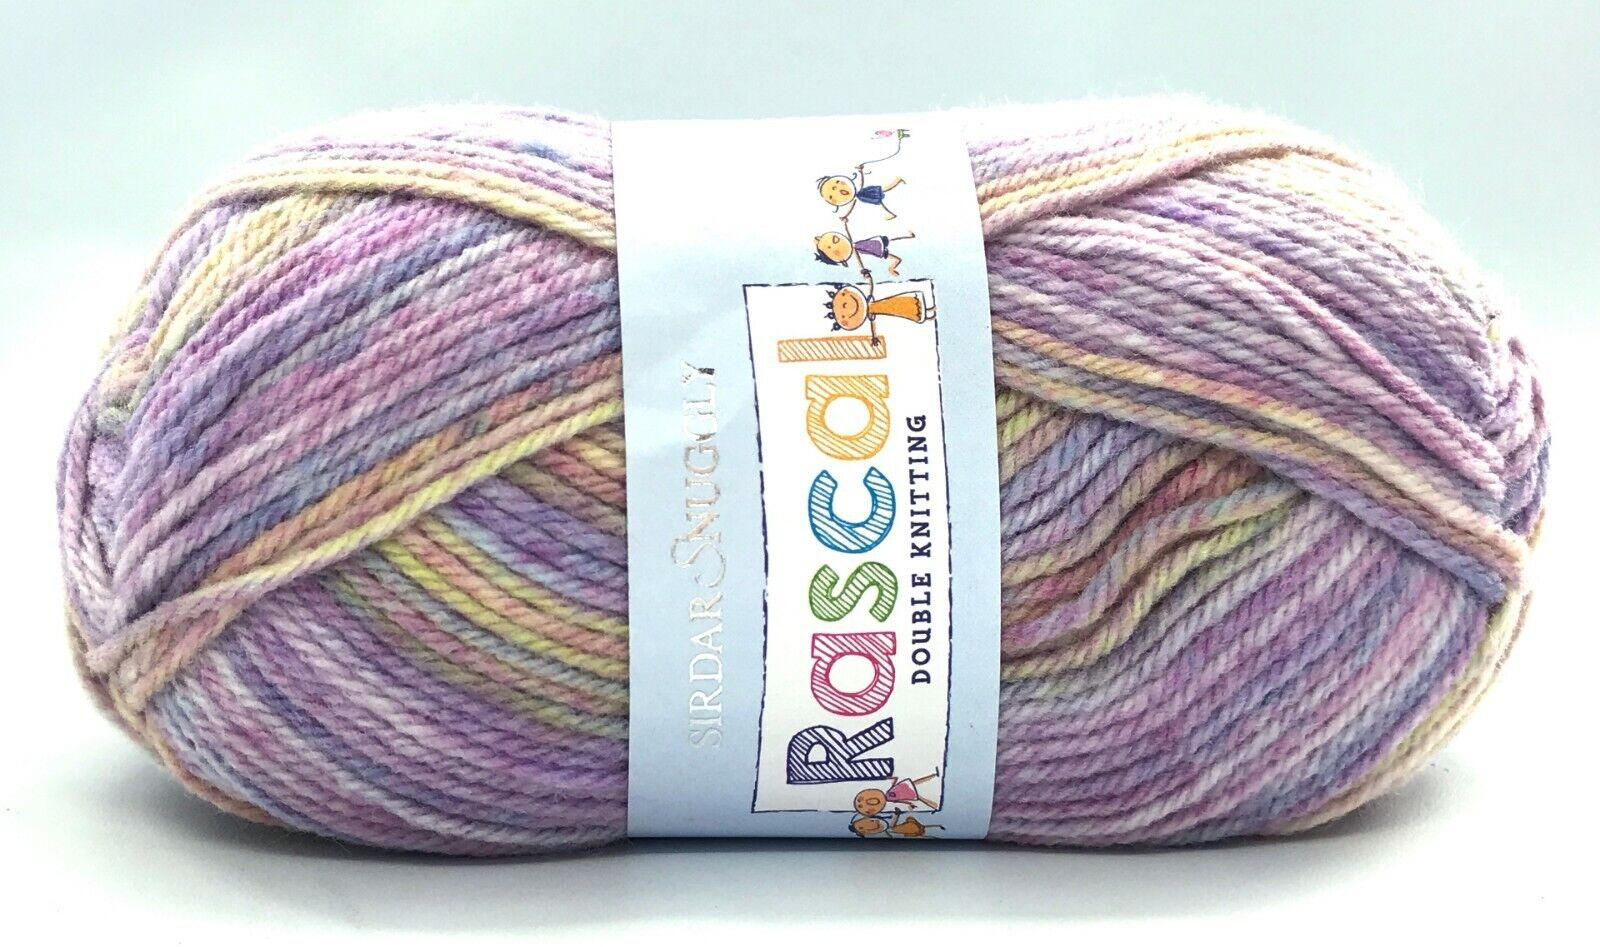 4 Skeins of Sirdar Snuggly Spots Double Knitting Yarn Color #433